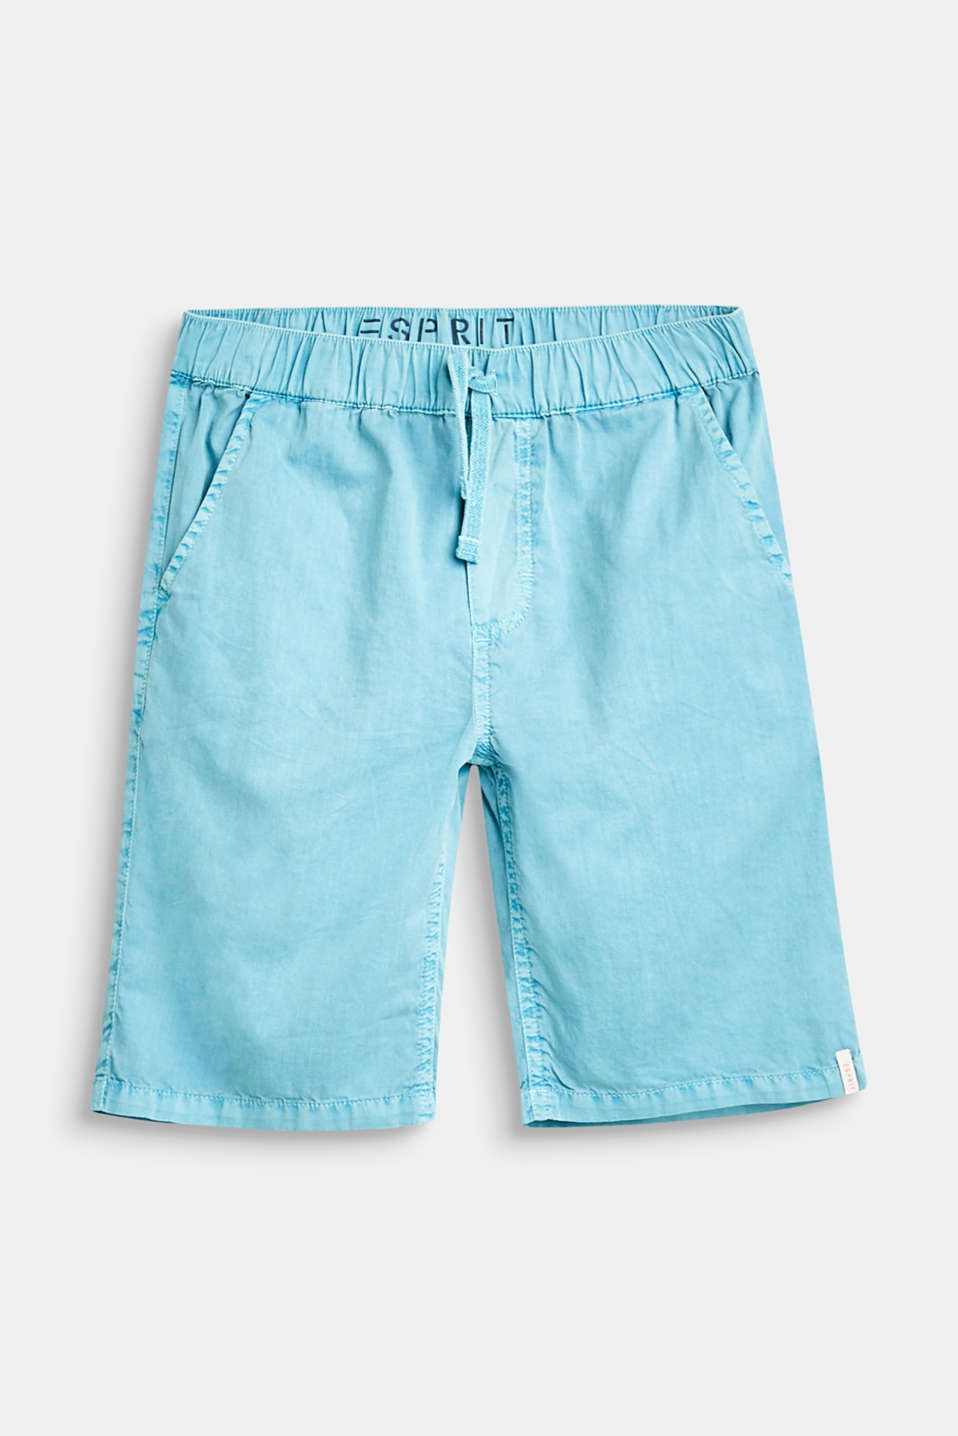 Esprit - Woven cotton shorts with an elasticated waistband